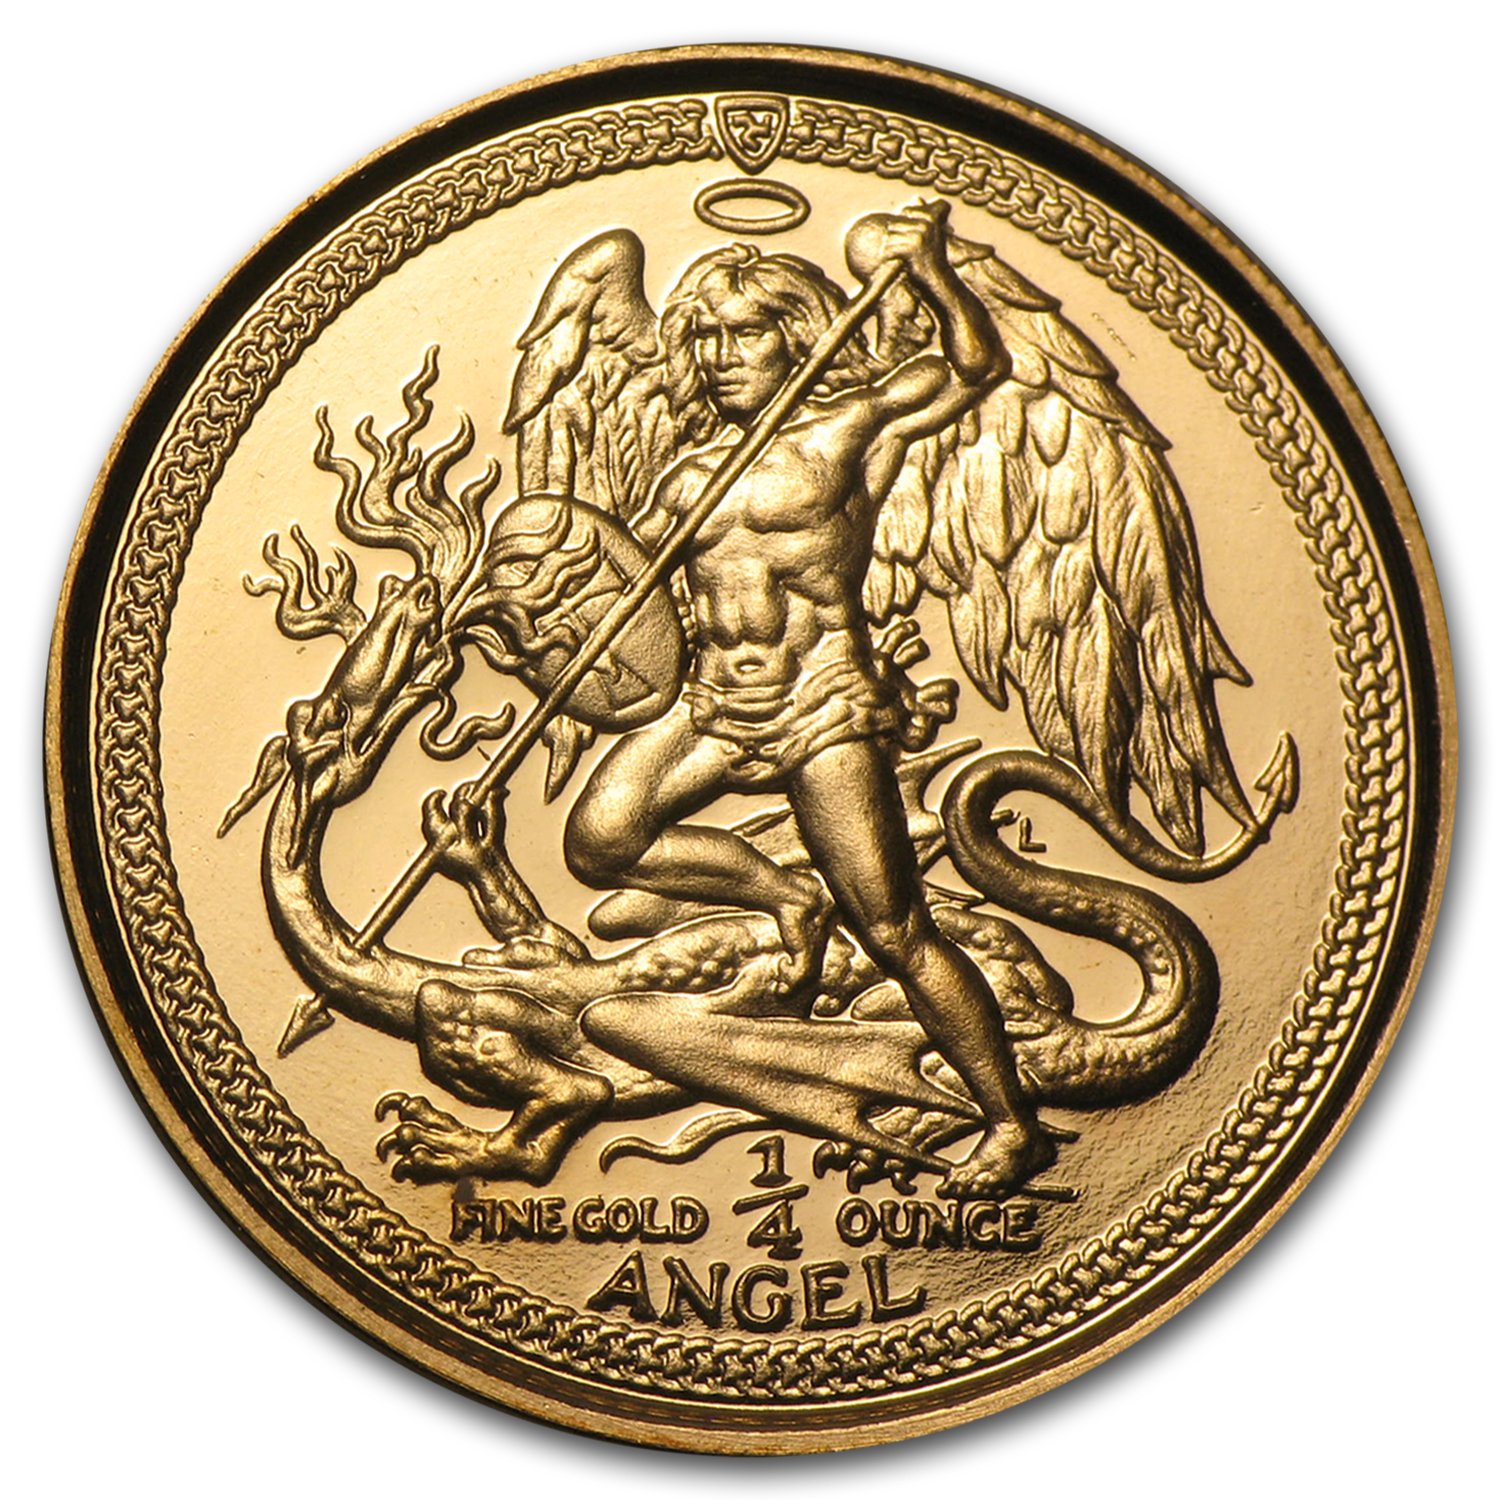 Isle of Man 1/4 oz Gold Angel BU/Proof (Random Year)